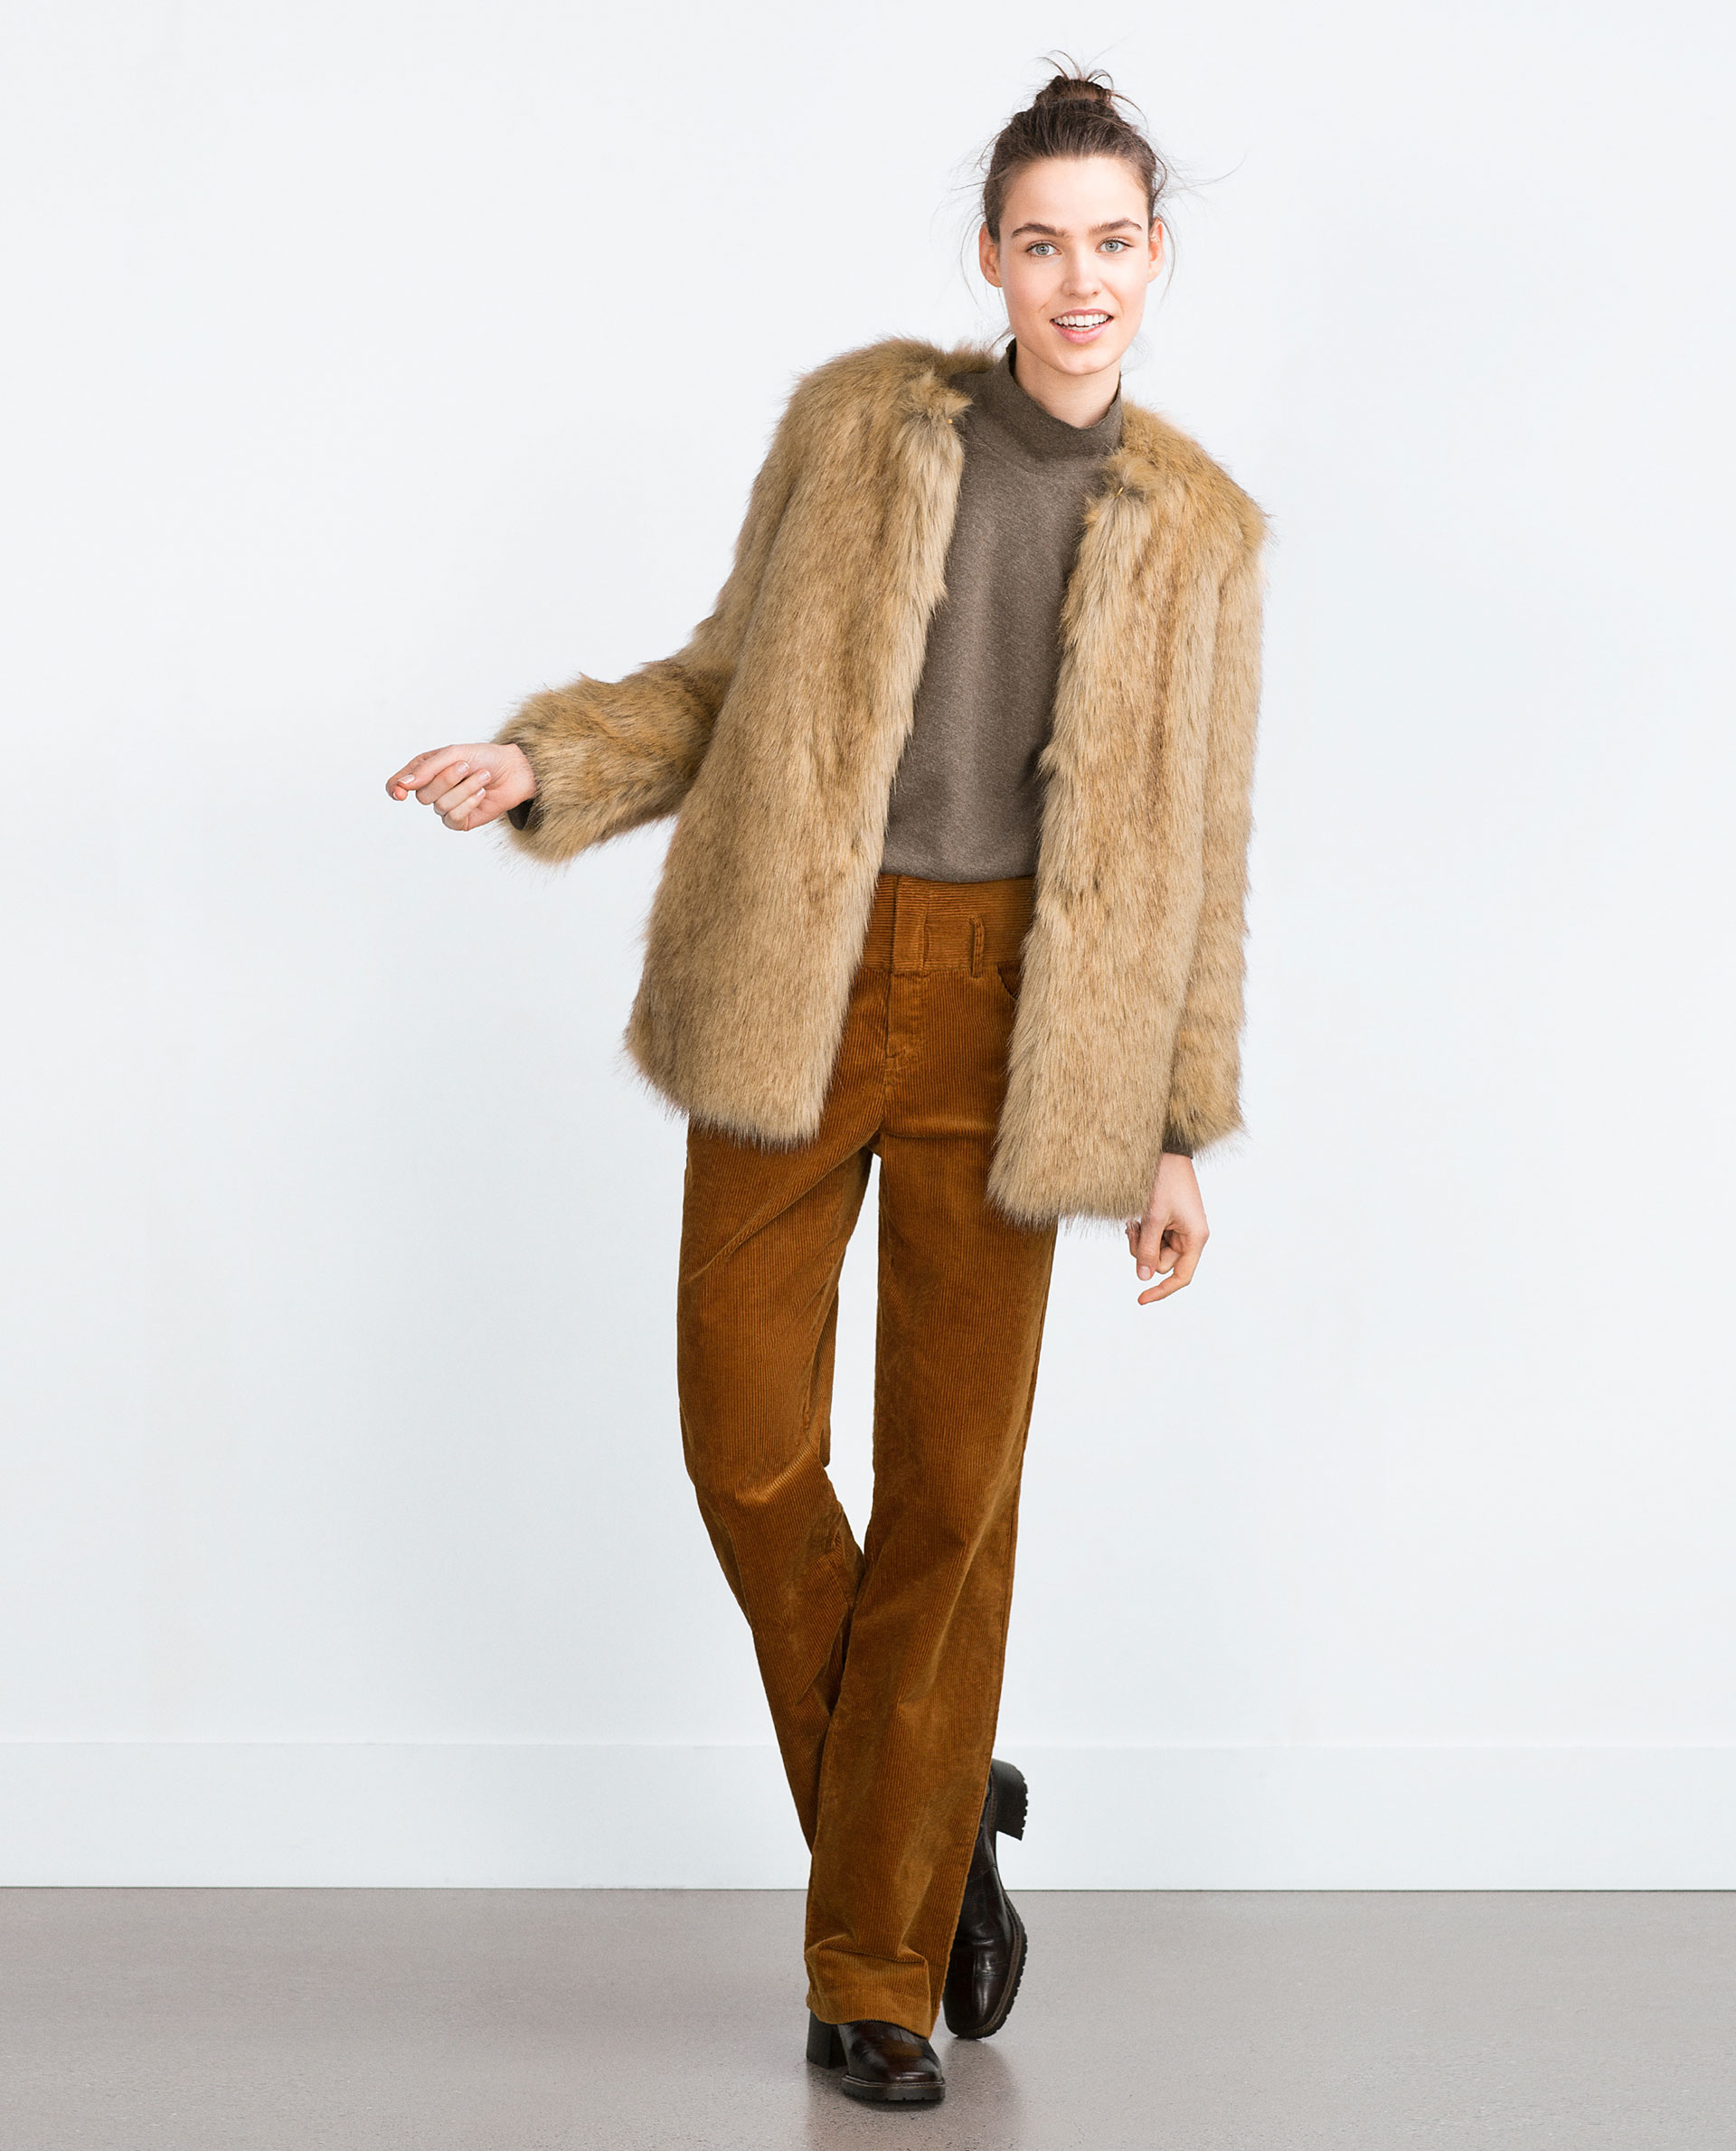 Faux Fur Coats From lined motorcycle jackets to dusters, there's plenty of faux fur to go around this winter at Zara. No matter your personal style, guaranteed, there's a furry option just waiting.